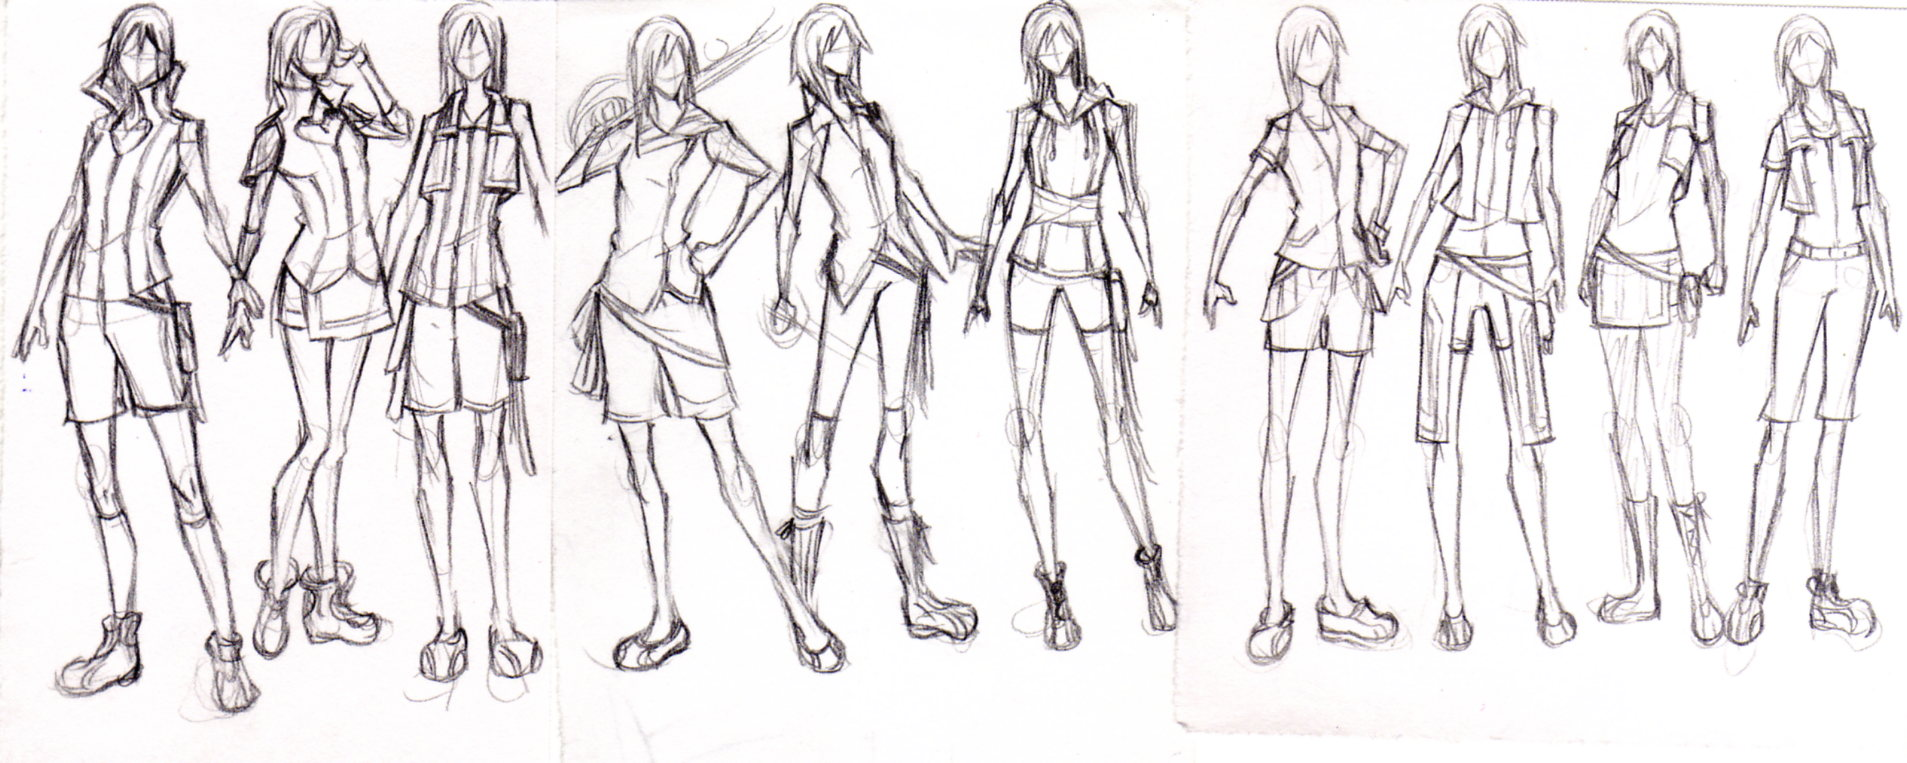 Kairi clothing ideas by FudgemintGuardian